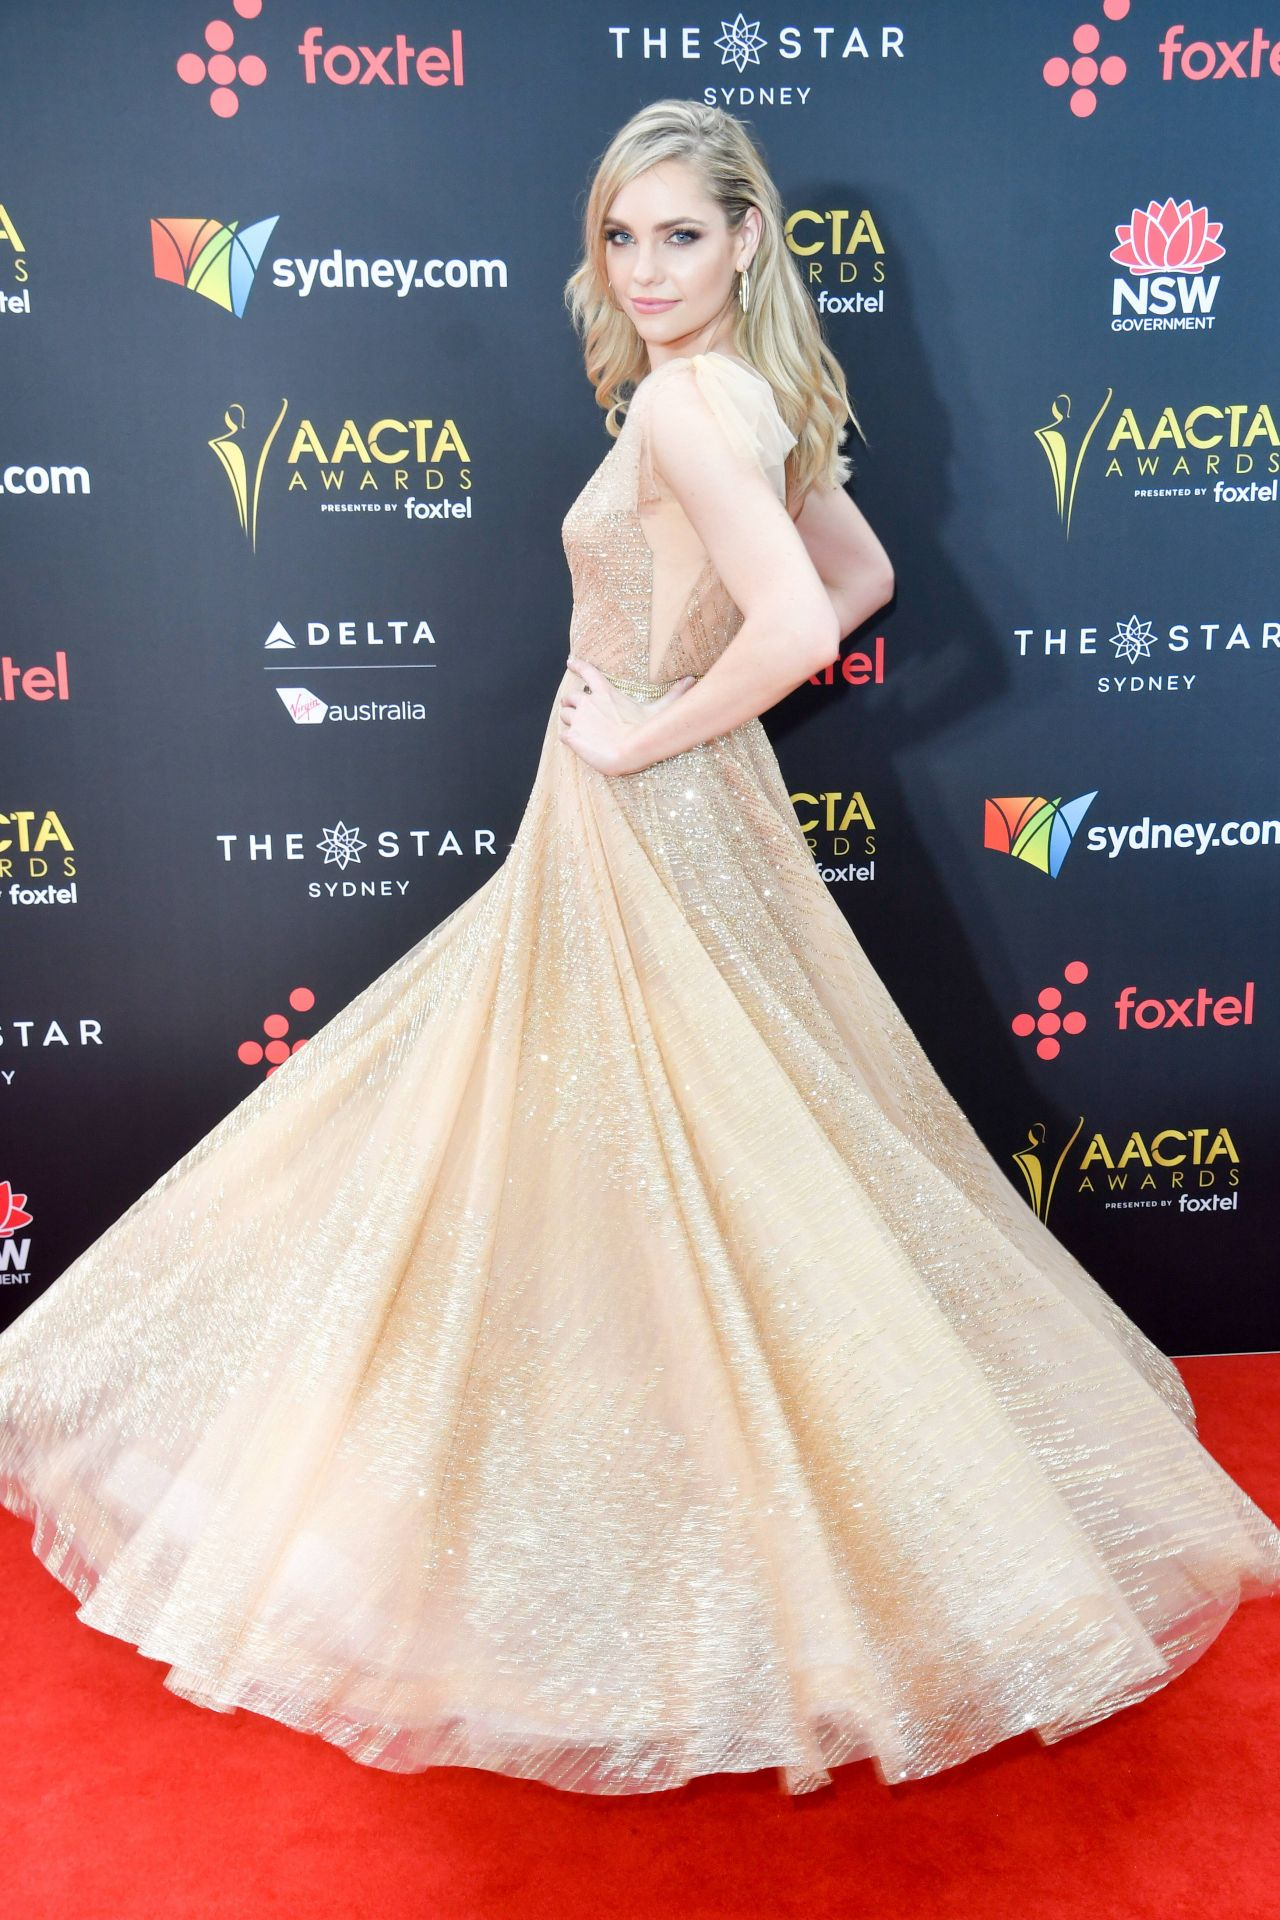 Melina Vidler Aacta Awards 2017 Red Carpet In Sydney